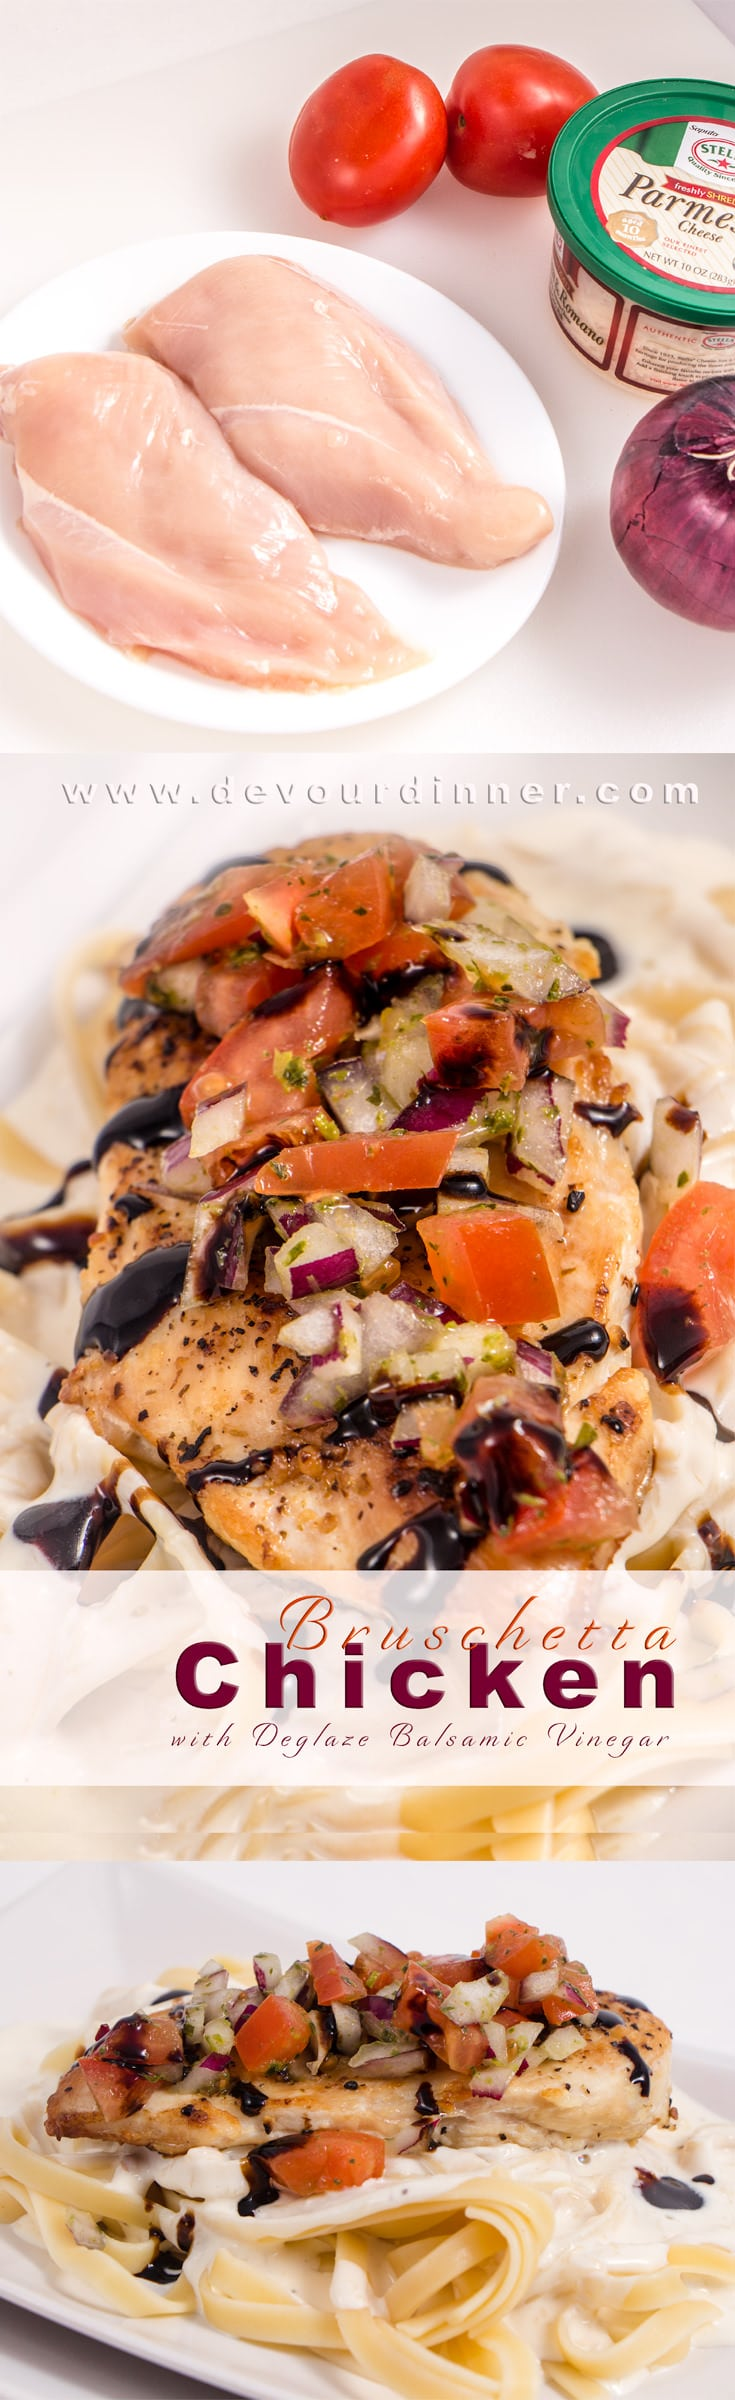 "Bruschetta Chicken with Deglaze Balsamic Vinegar - Devour Dinner. Where you can find ""What's for Dinner?"". Easy recipes full of flavor. Try this recipe for Bruschetta Chicken with our Alfredo Sauce, it's wonderful. #chicken #chickenrecipe #easydinner #easyrecipe #devourdinner #food #foodie #recipe #recipes #bruschetta #easybruschetta #balsamic #yum #yummy"